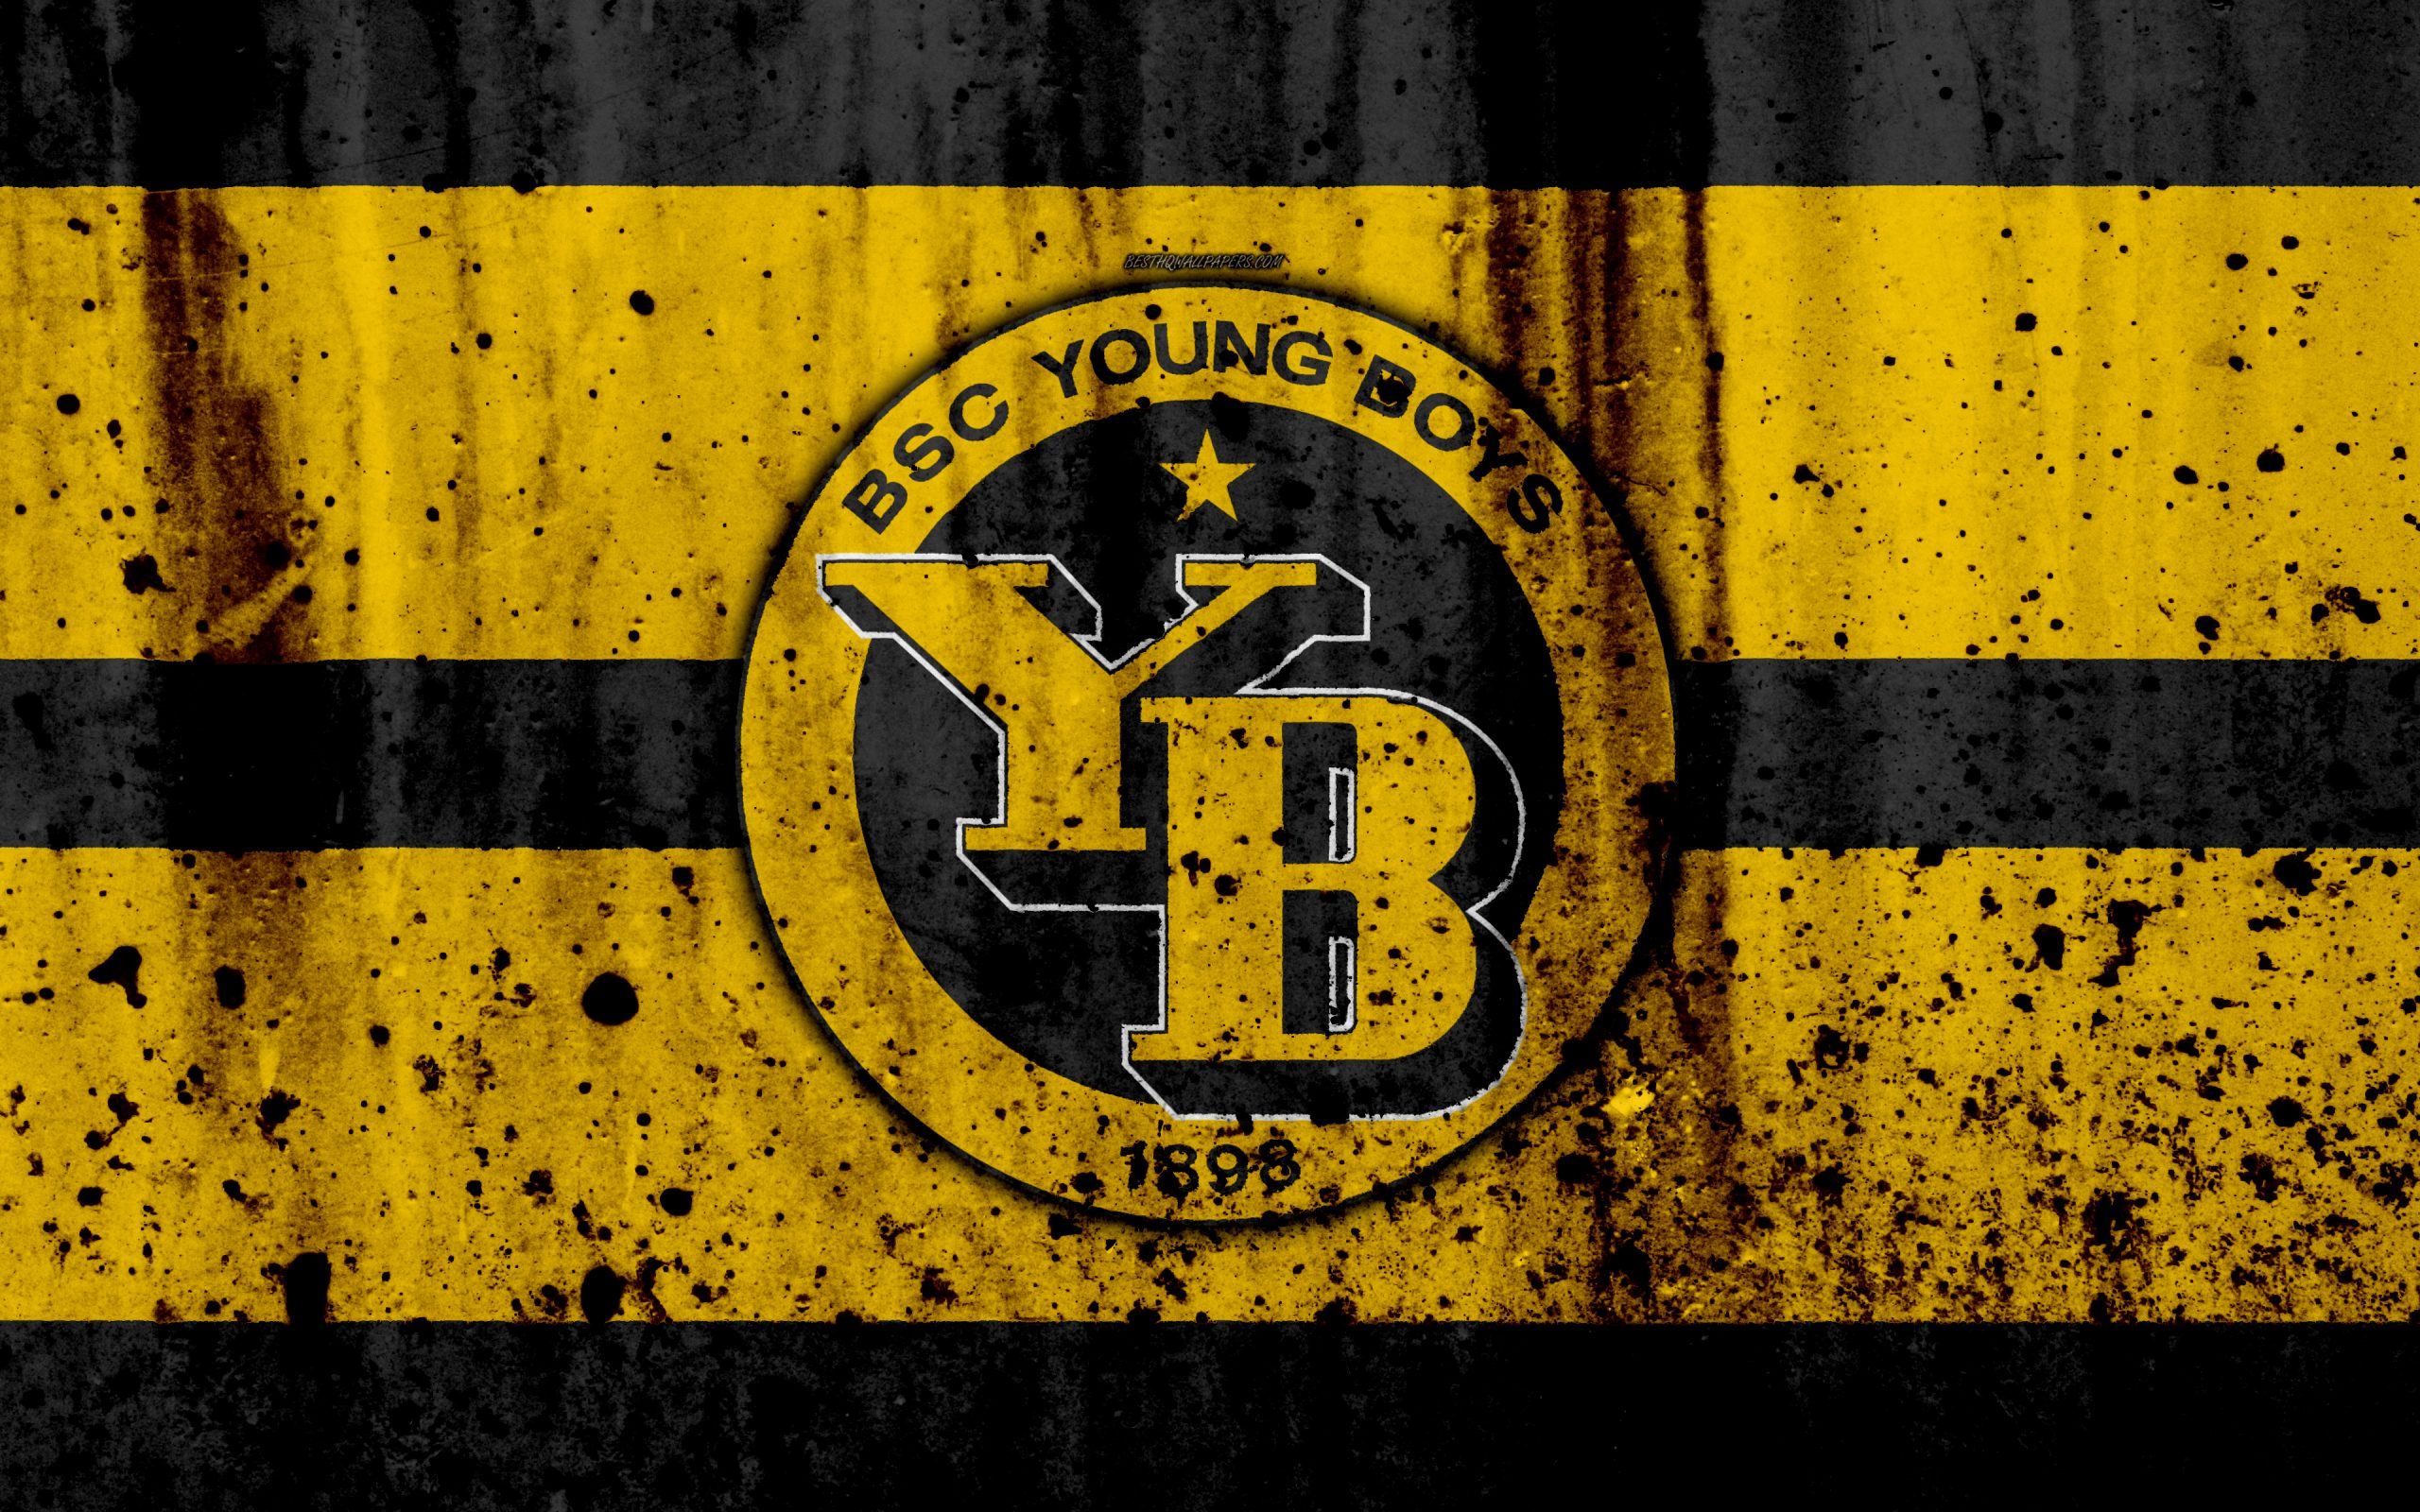 young boys fc 4k logo stone texture grunge